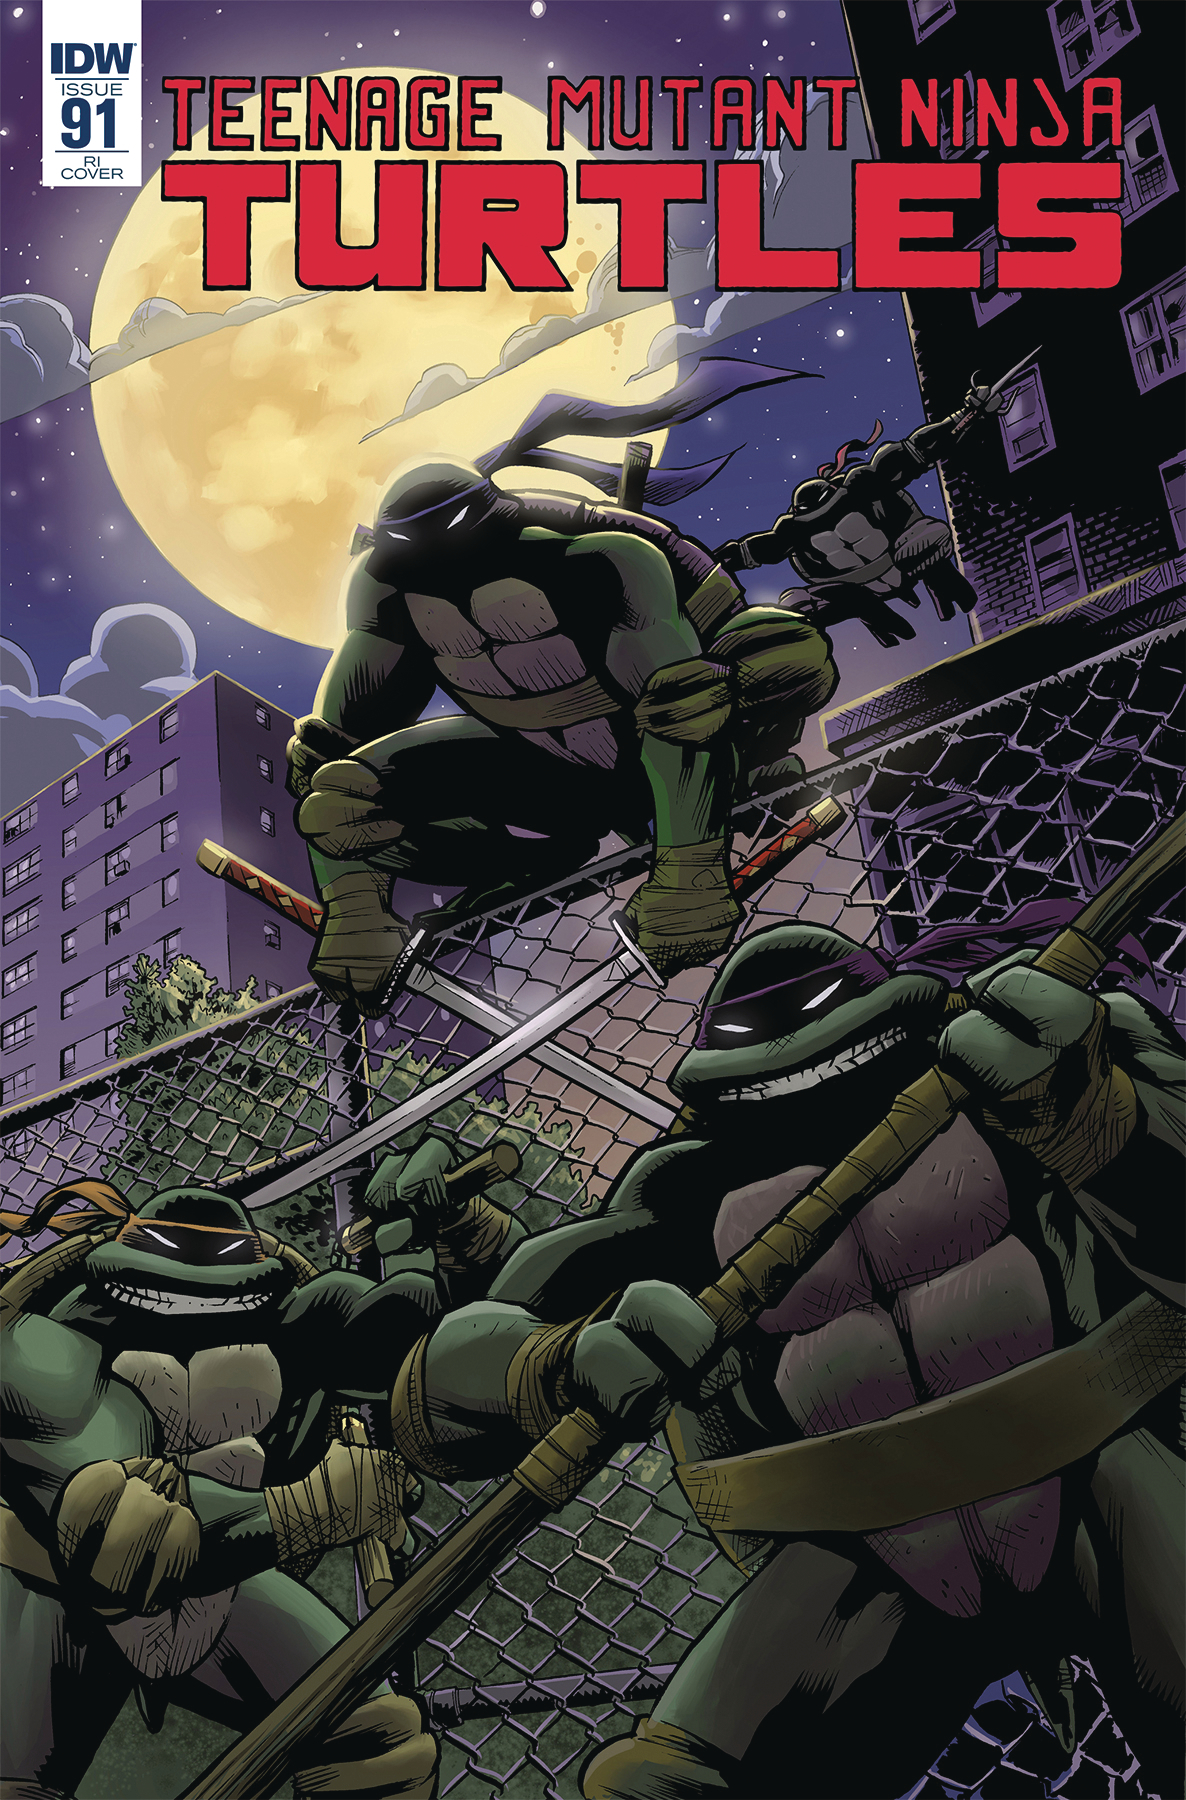 TMNT ONGOING #91 10 COPY INCV MOLINE